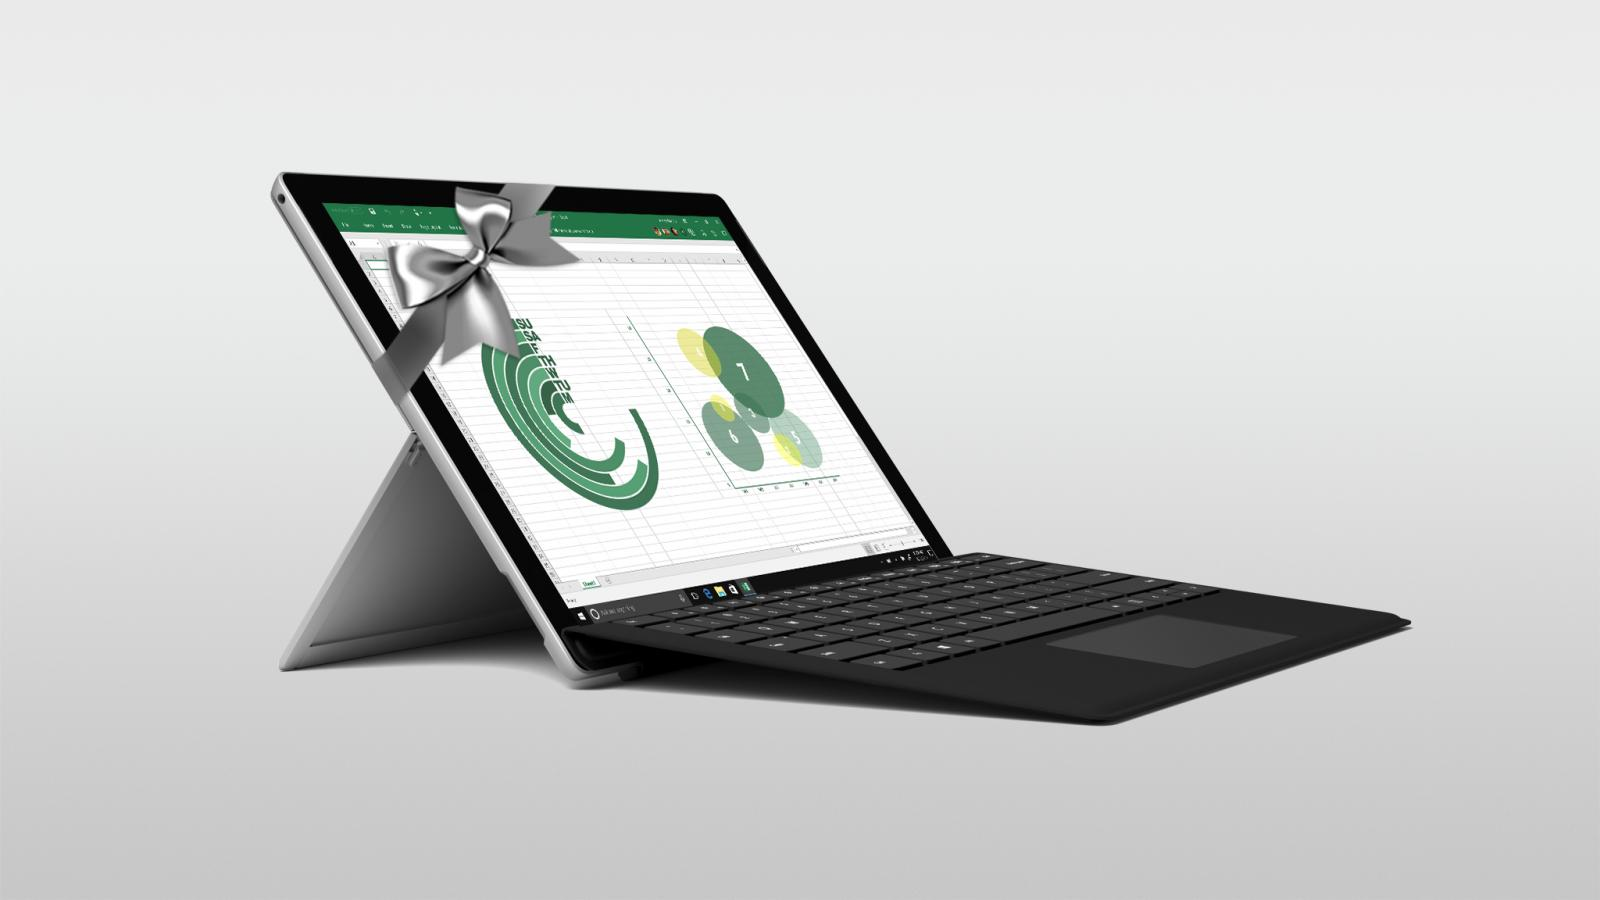 The new Surface Pro wrapped in a silver bow with Excel shown on the screen.